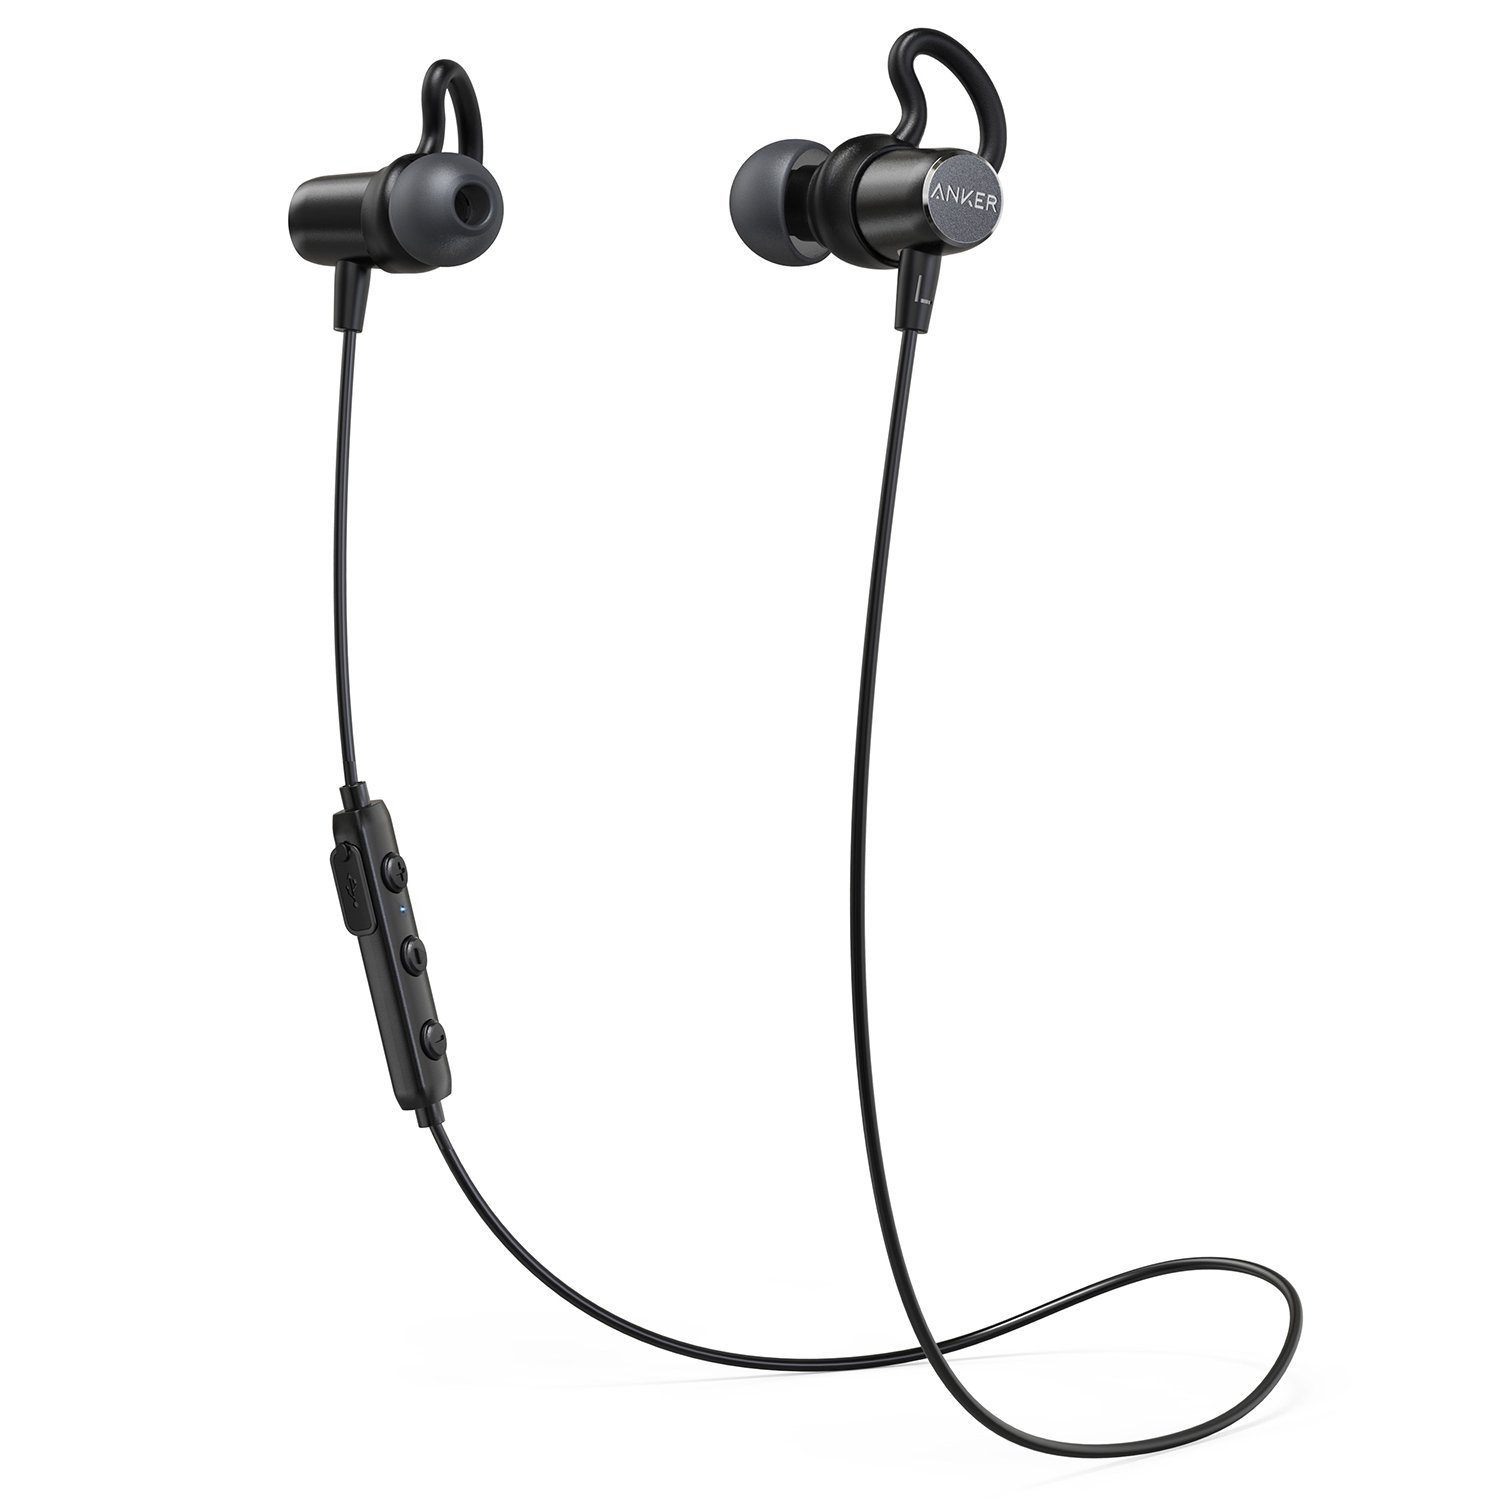 Anker SoundBuds Surge Lightweight Wireless Headphones, Bluetooth 4.1 Sports Earphones with Water-Resistant Nano Coating, Running Workout Headset with Magnetic Connector and Carry Pouch by Anker